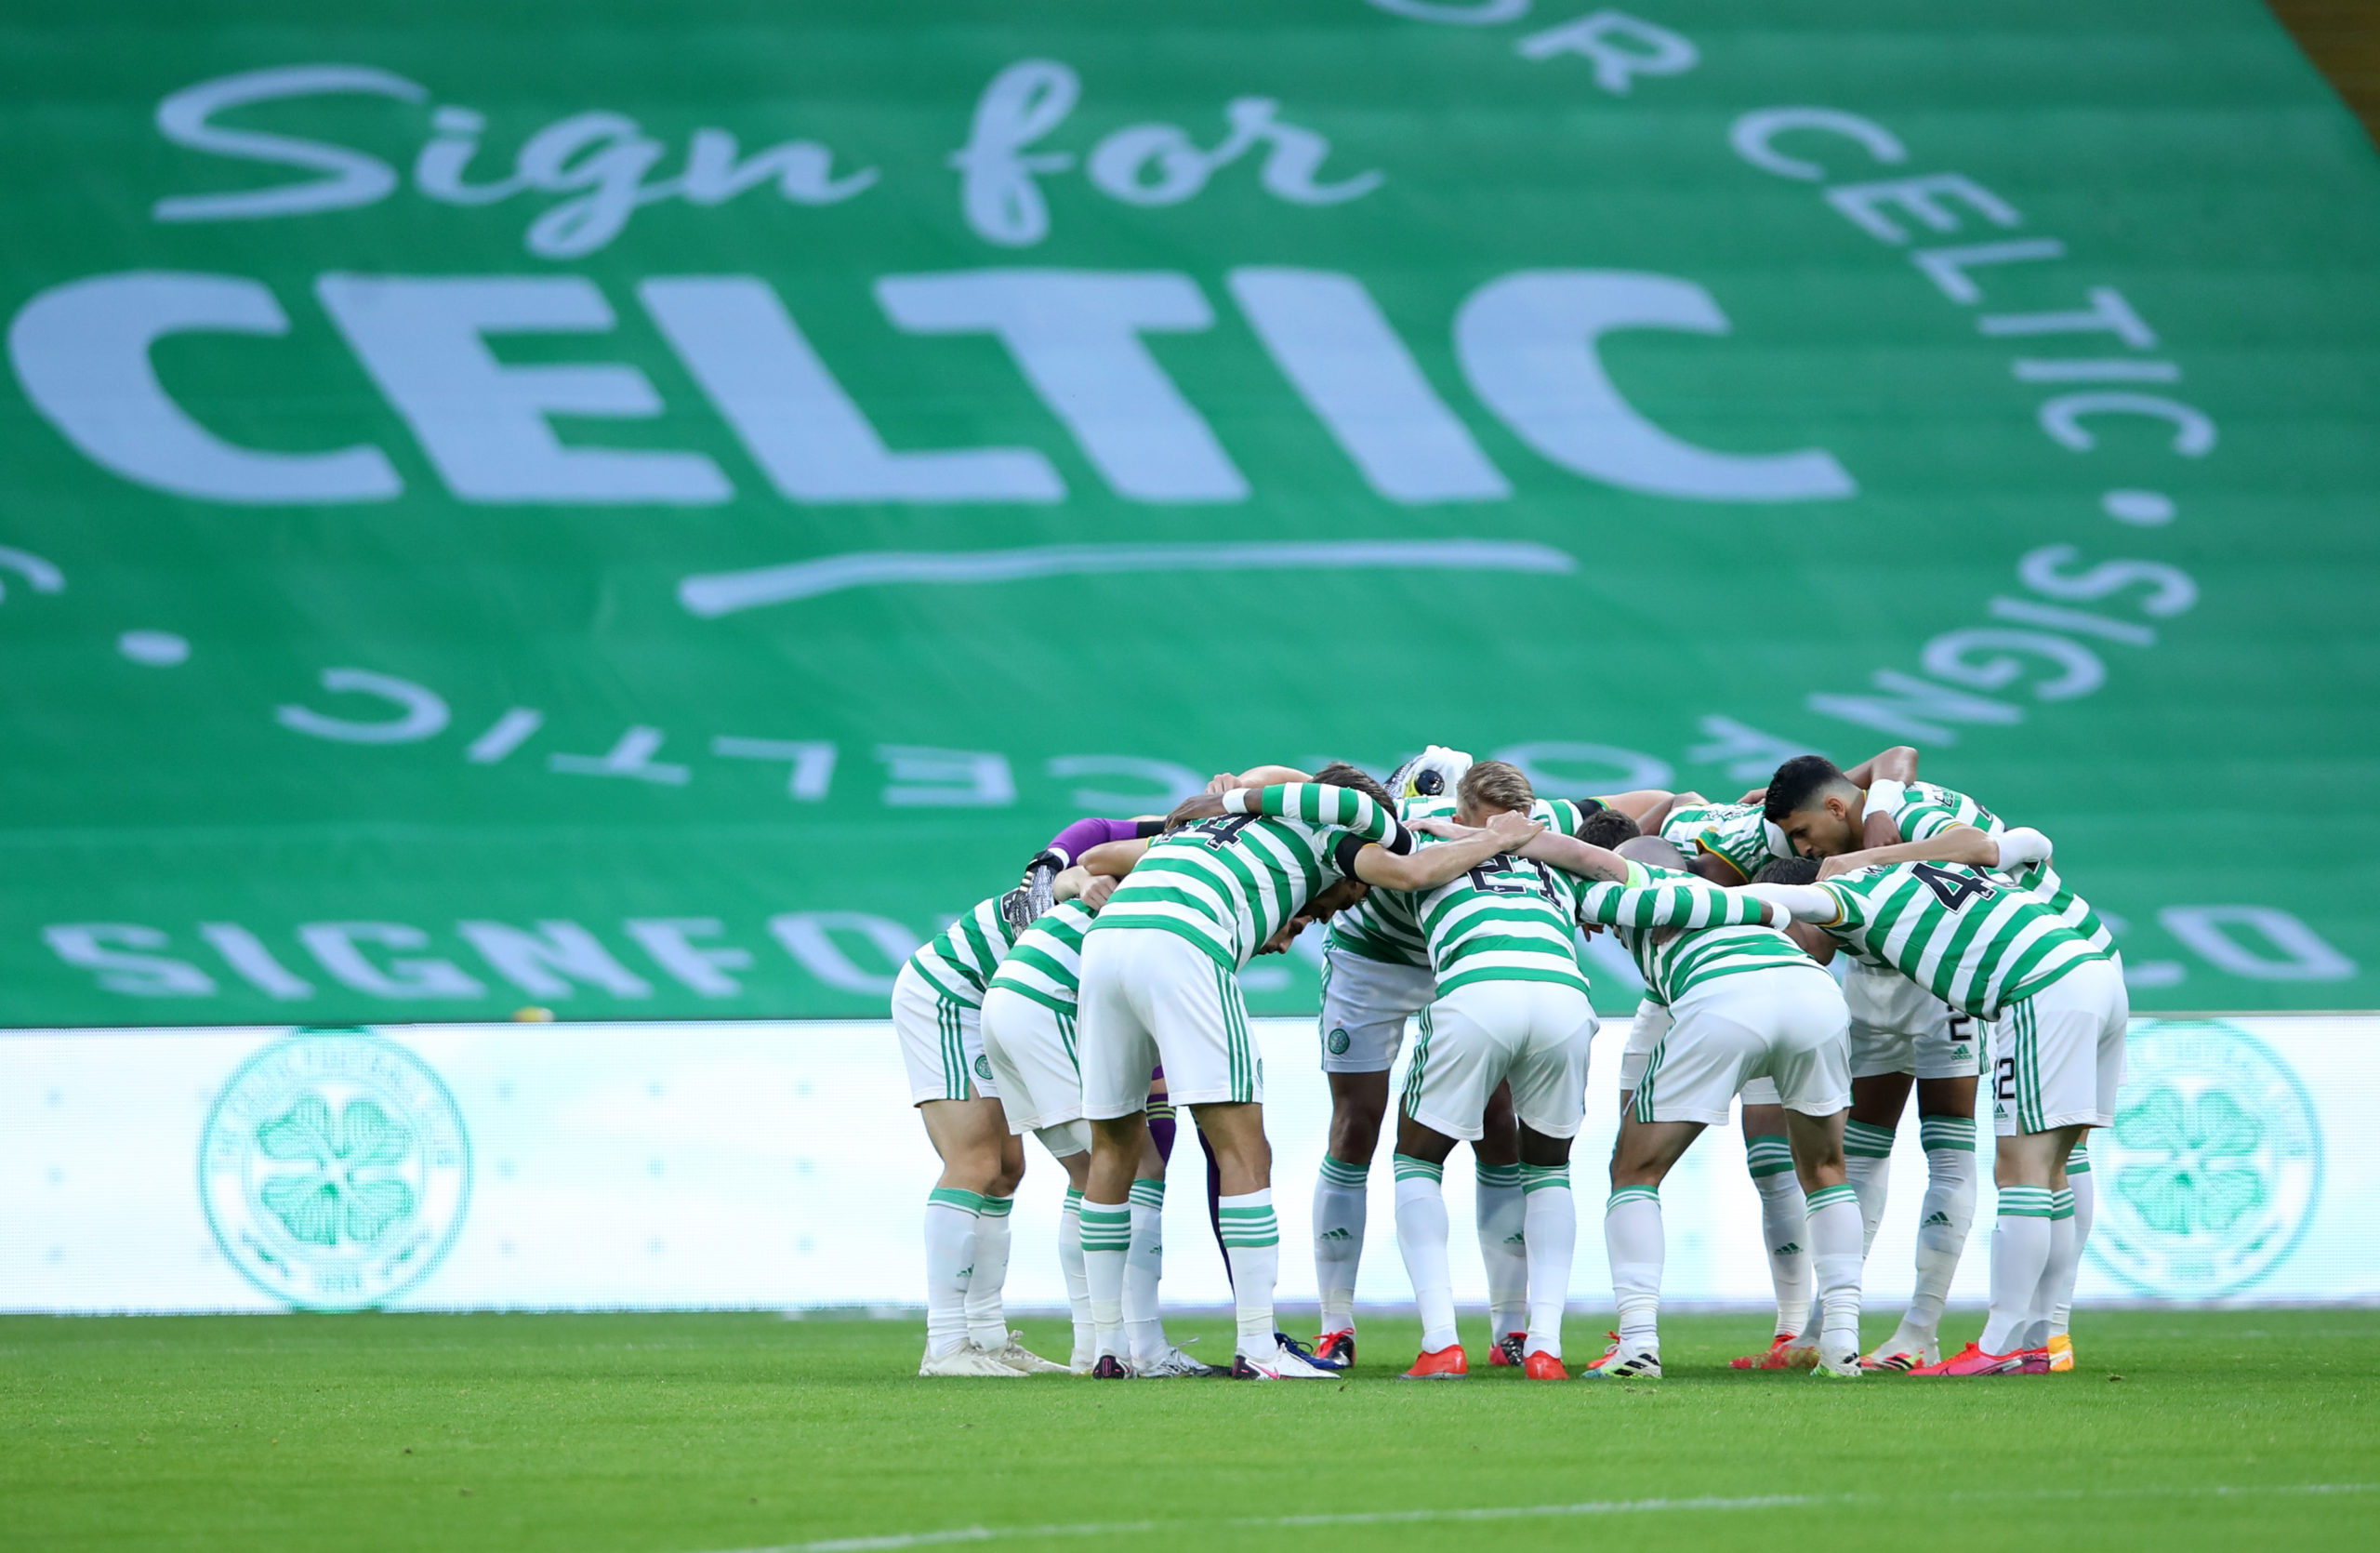 The Celtic huddle